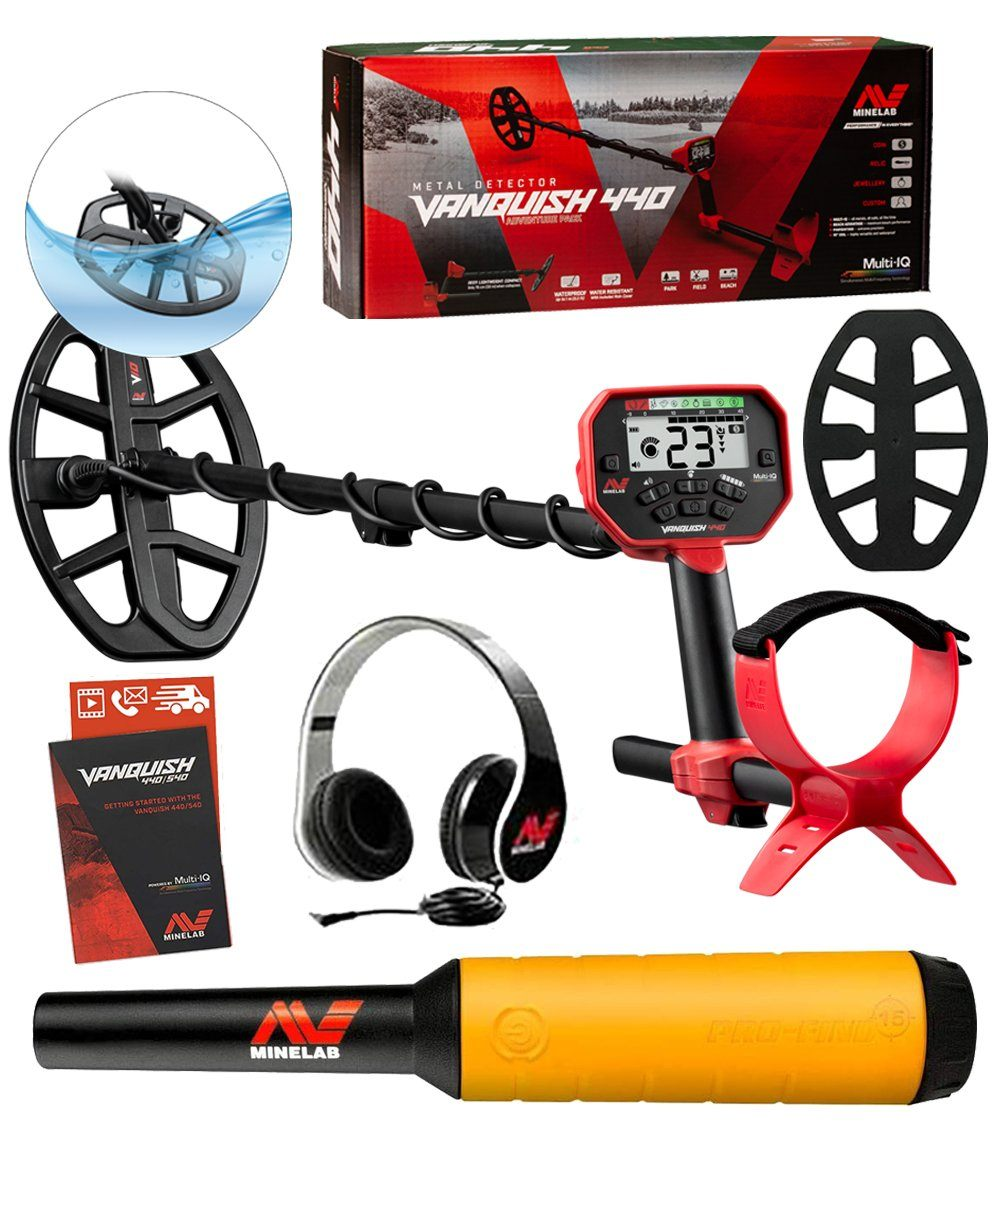 Minelab Vanquish 440 Holiday Special, FREE Pro-Find 15